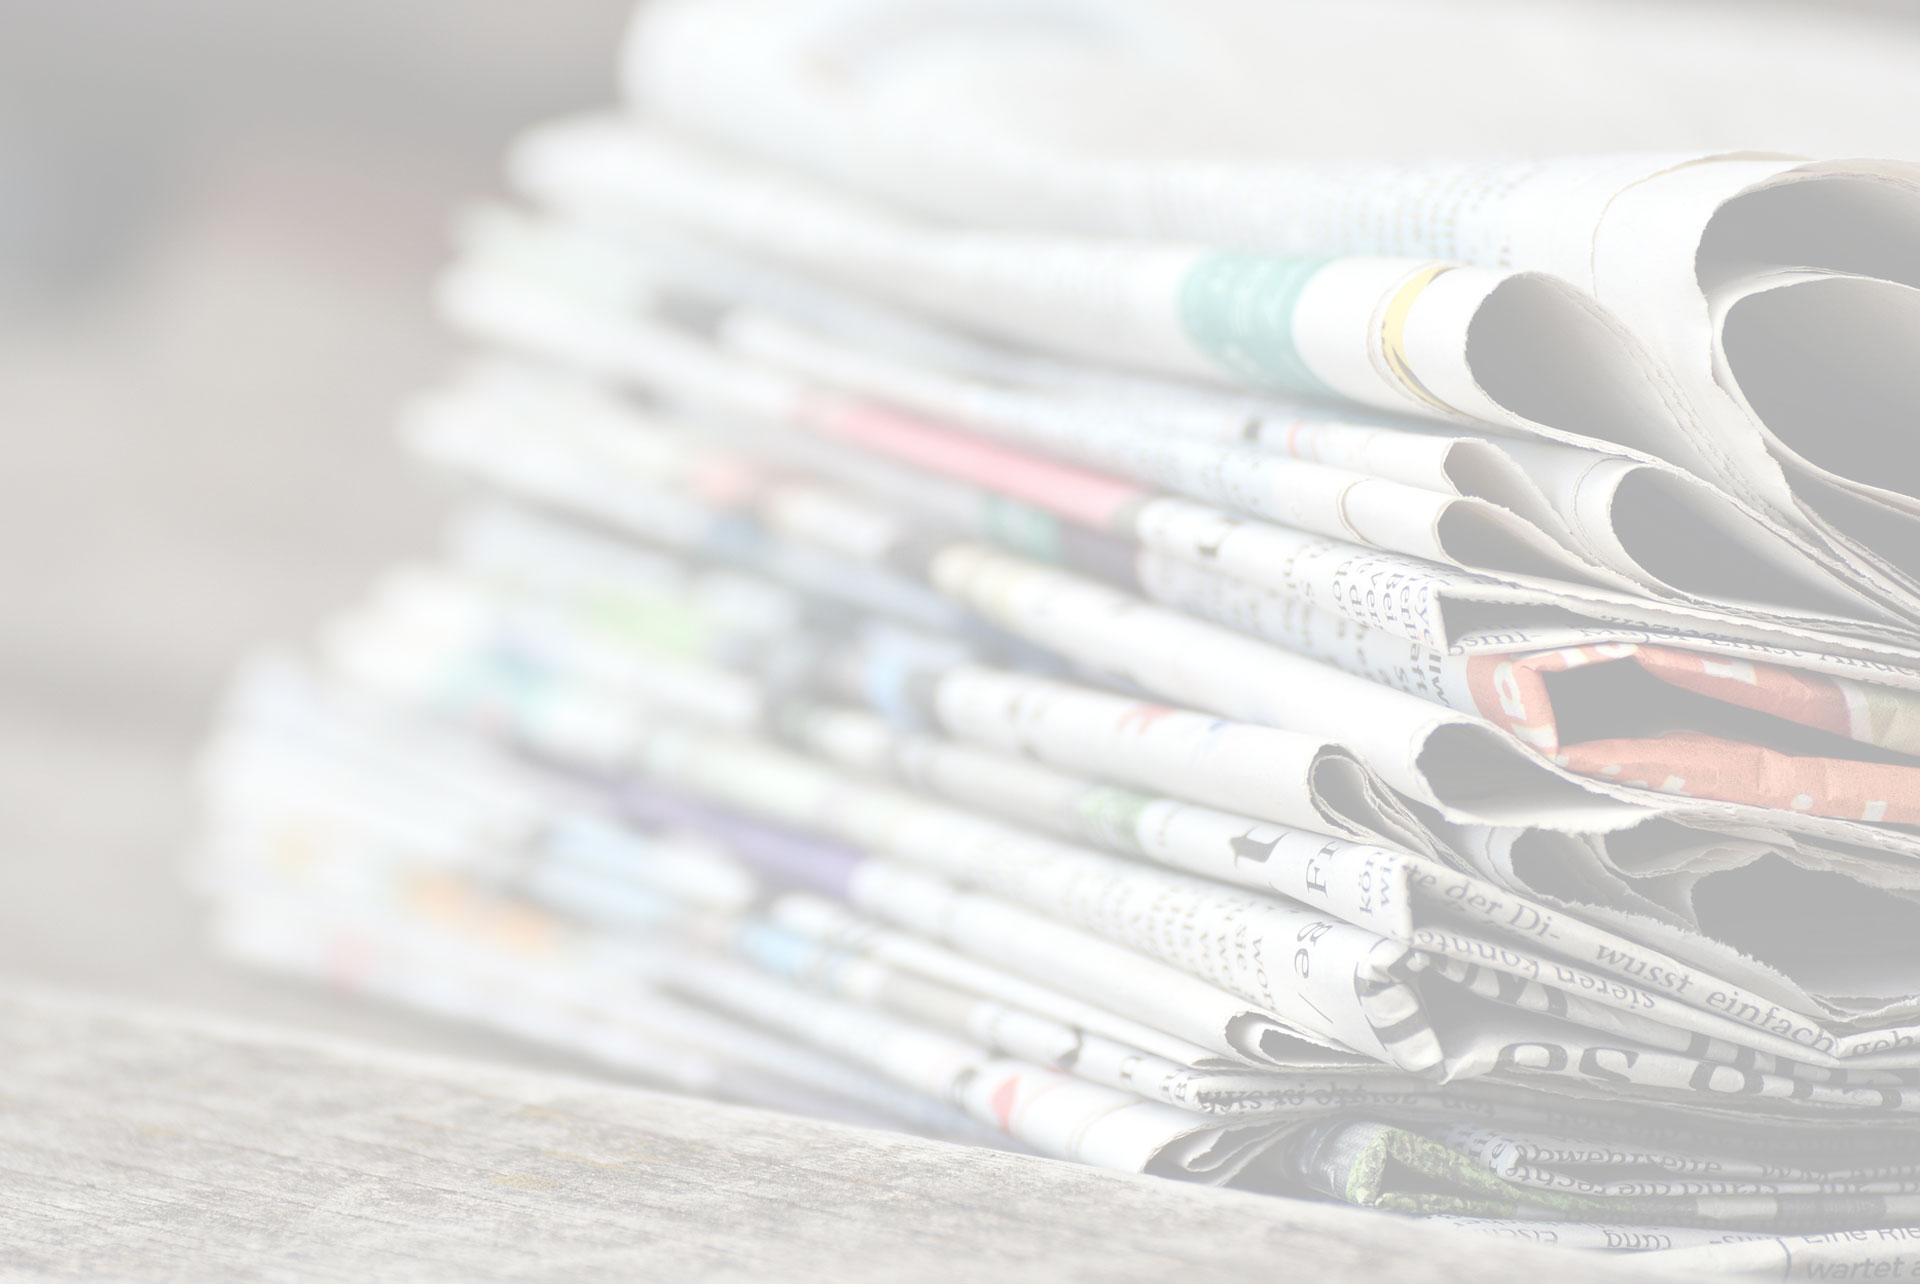 LEGGE ANTITRUST IN ITALIA